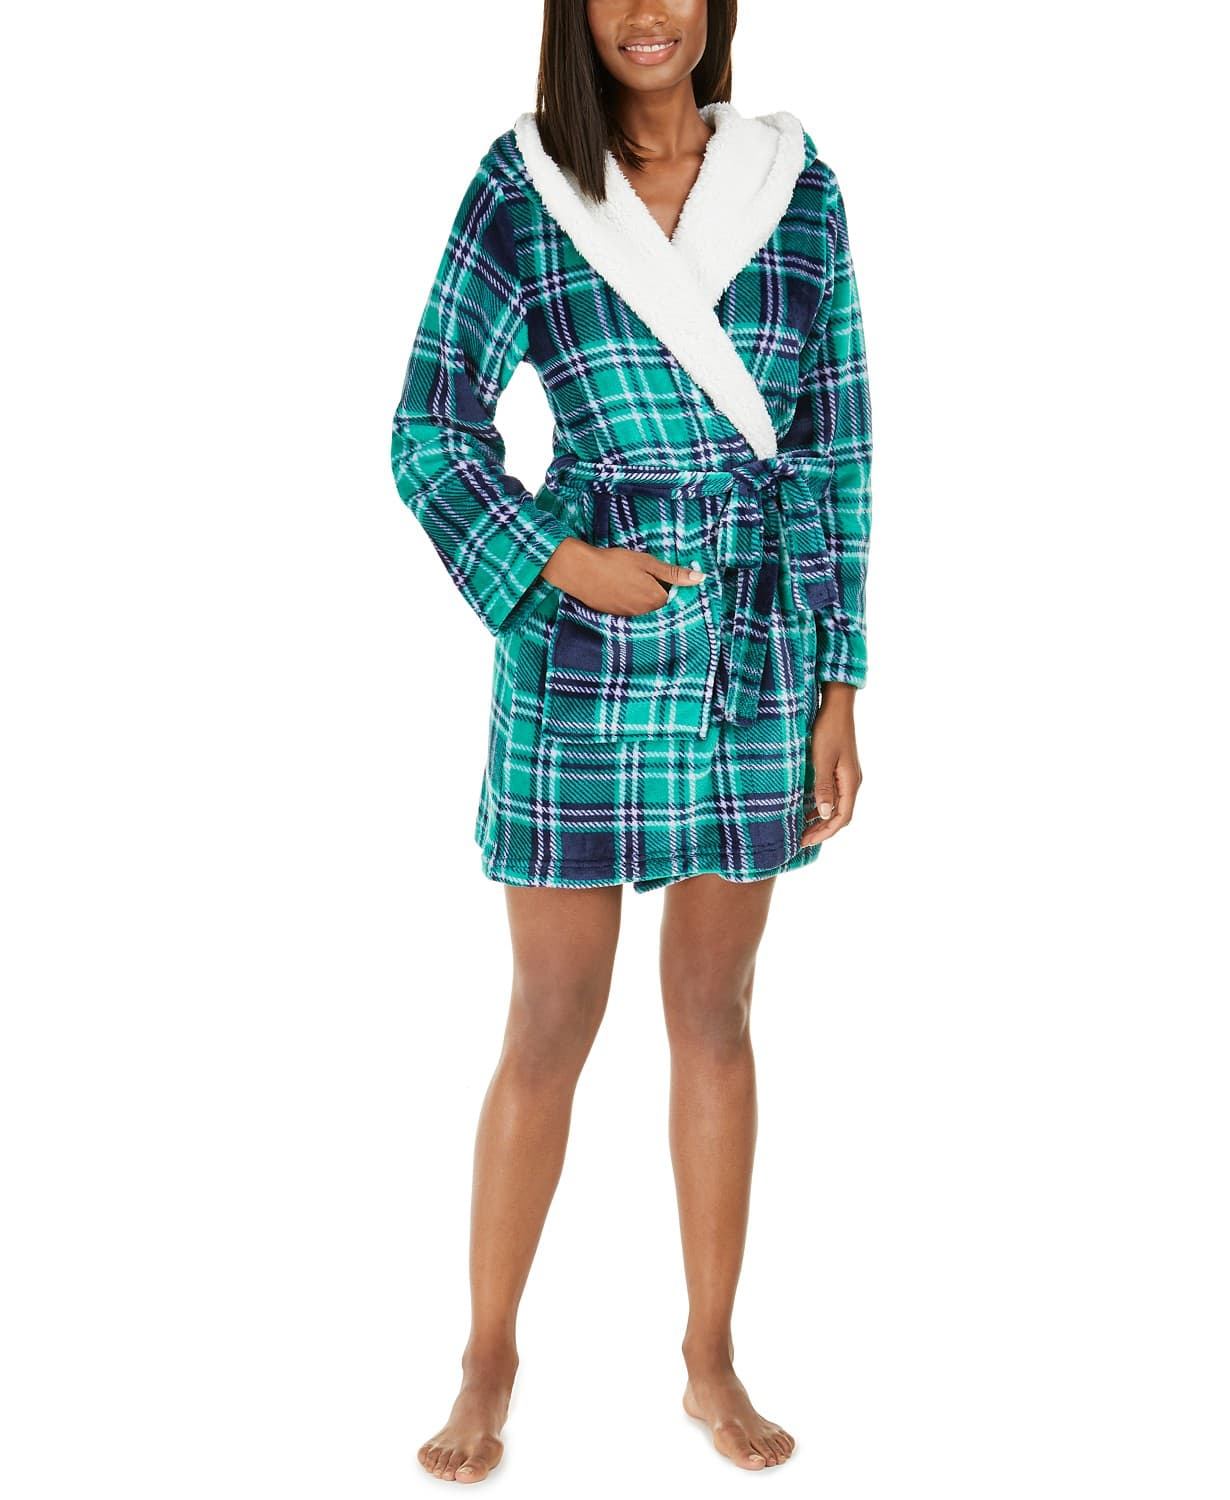 Jenni Women's Faux-Fur-Trim Plaid Bathrobe (Green, Pink) $10 at Macy's w/ Free Store Pickup